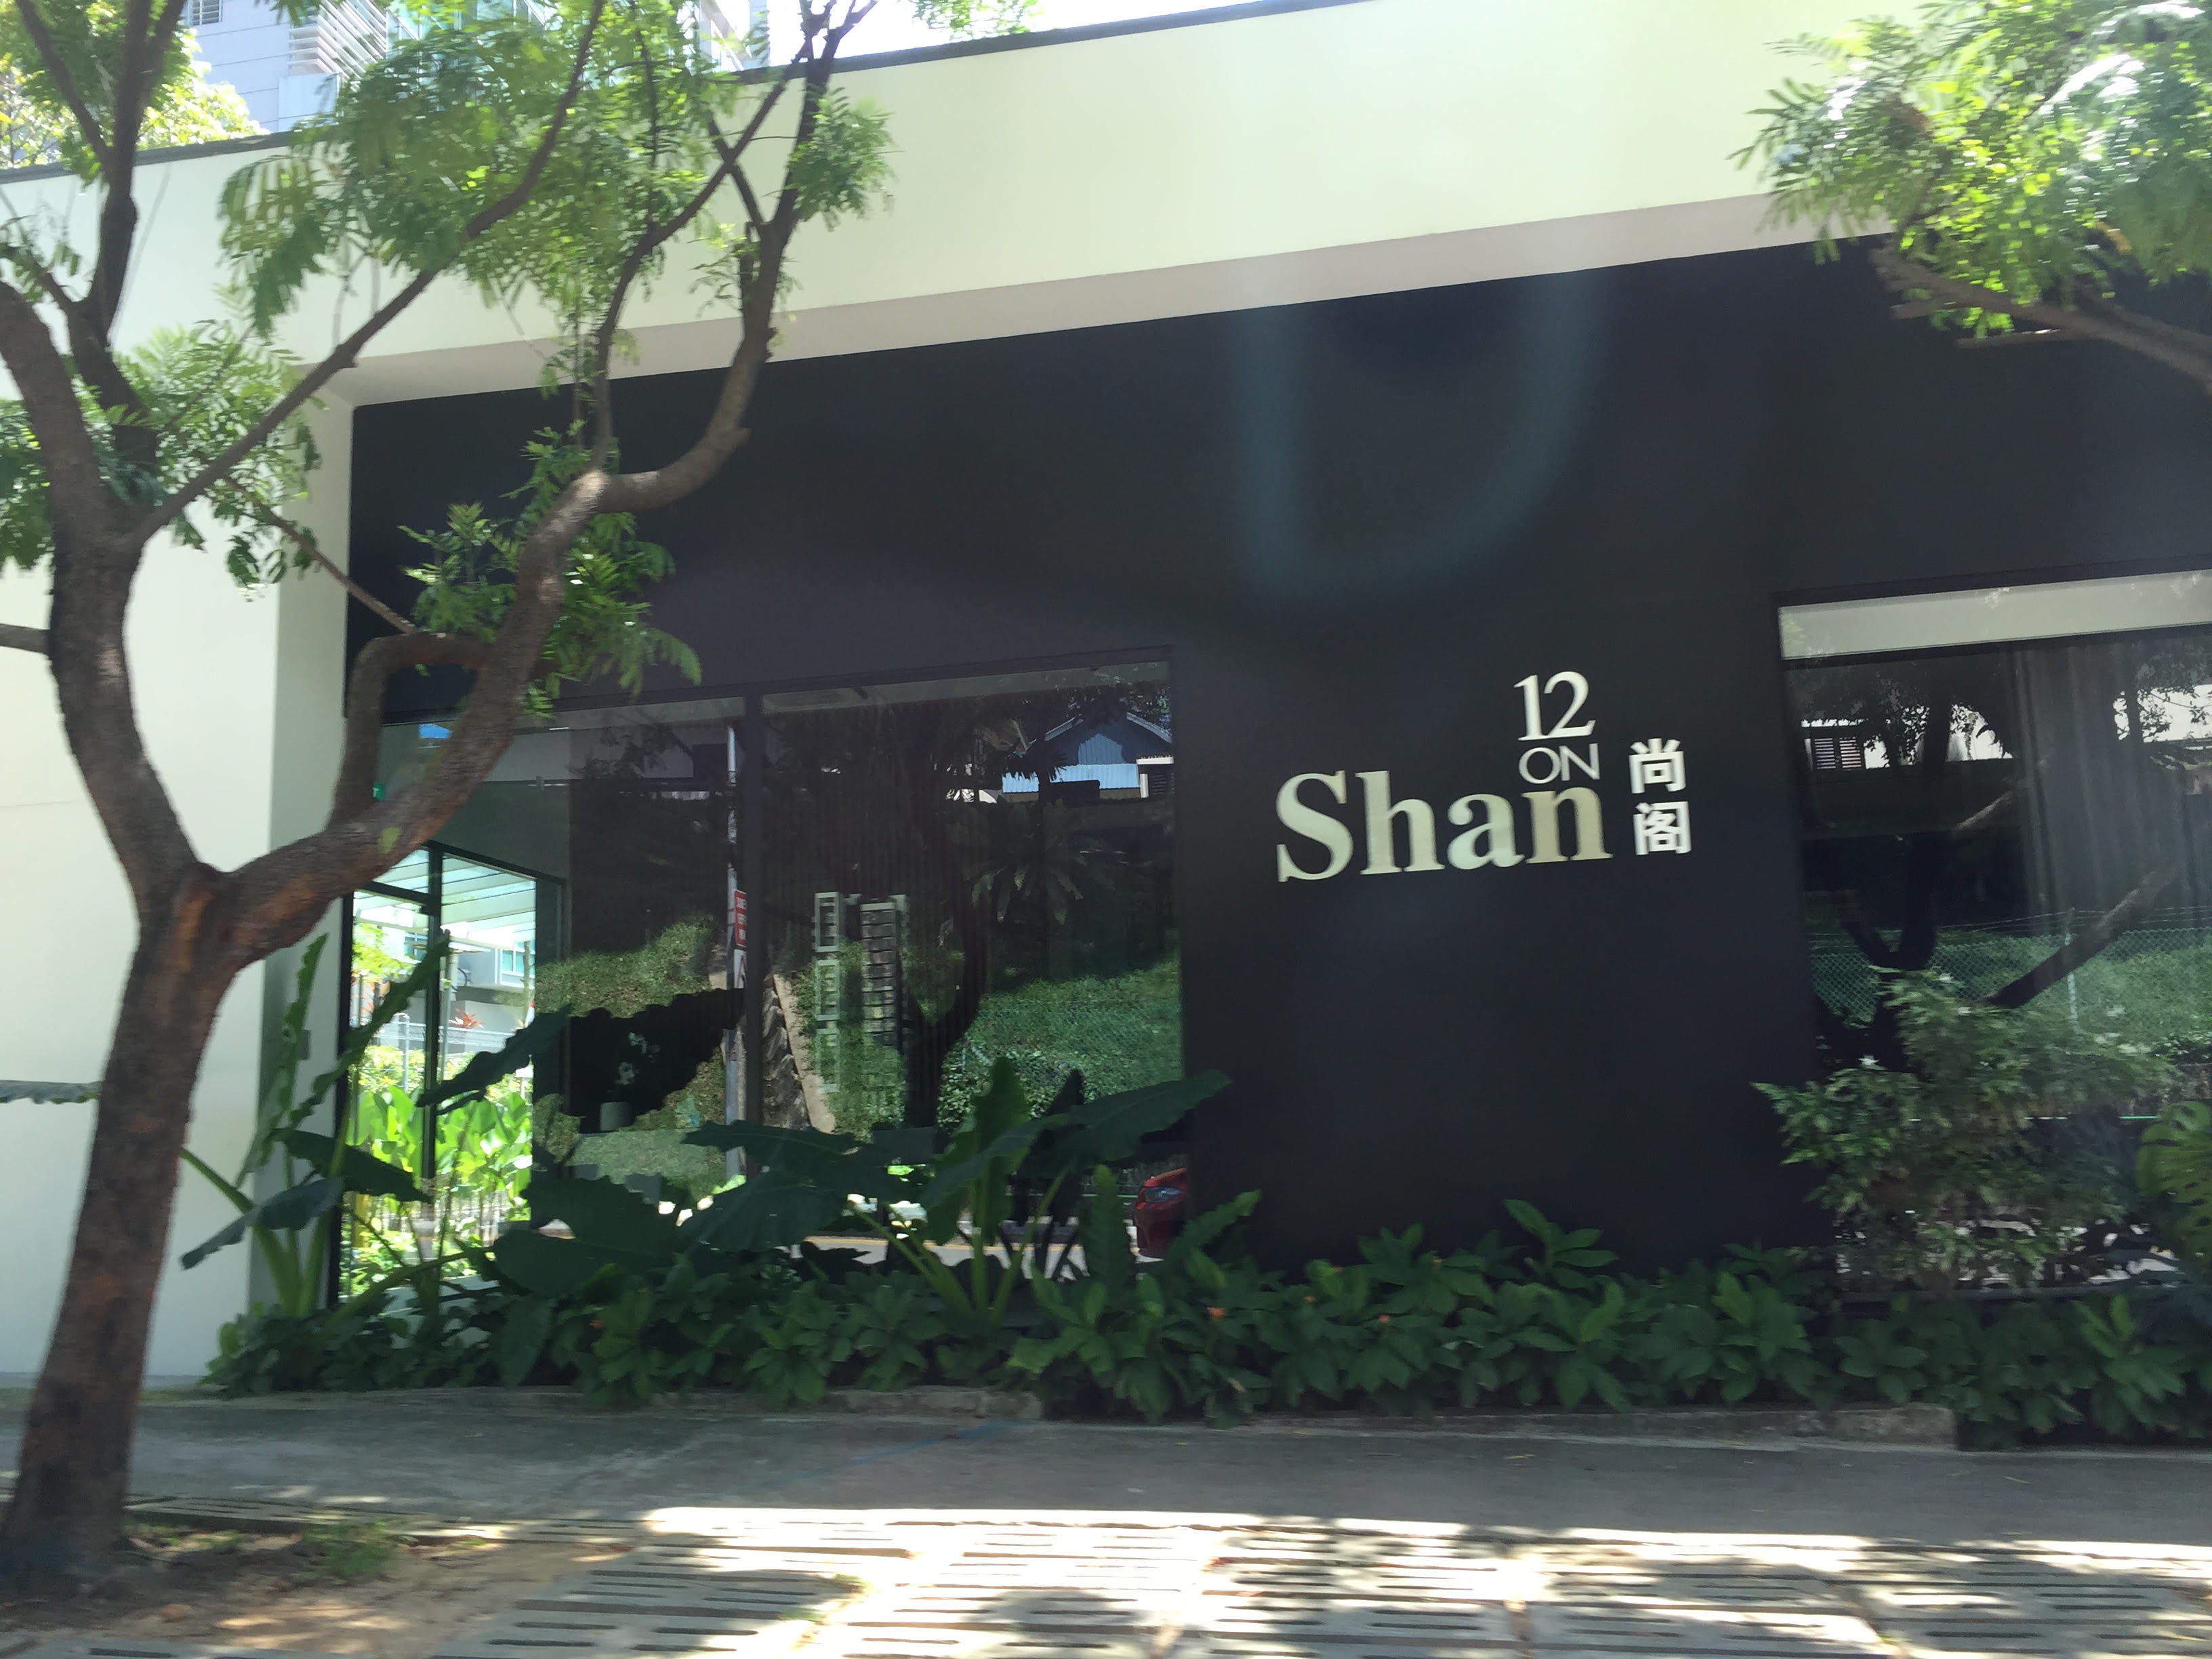 12 on shan facade